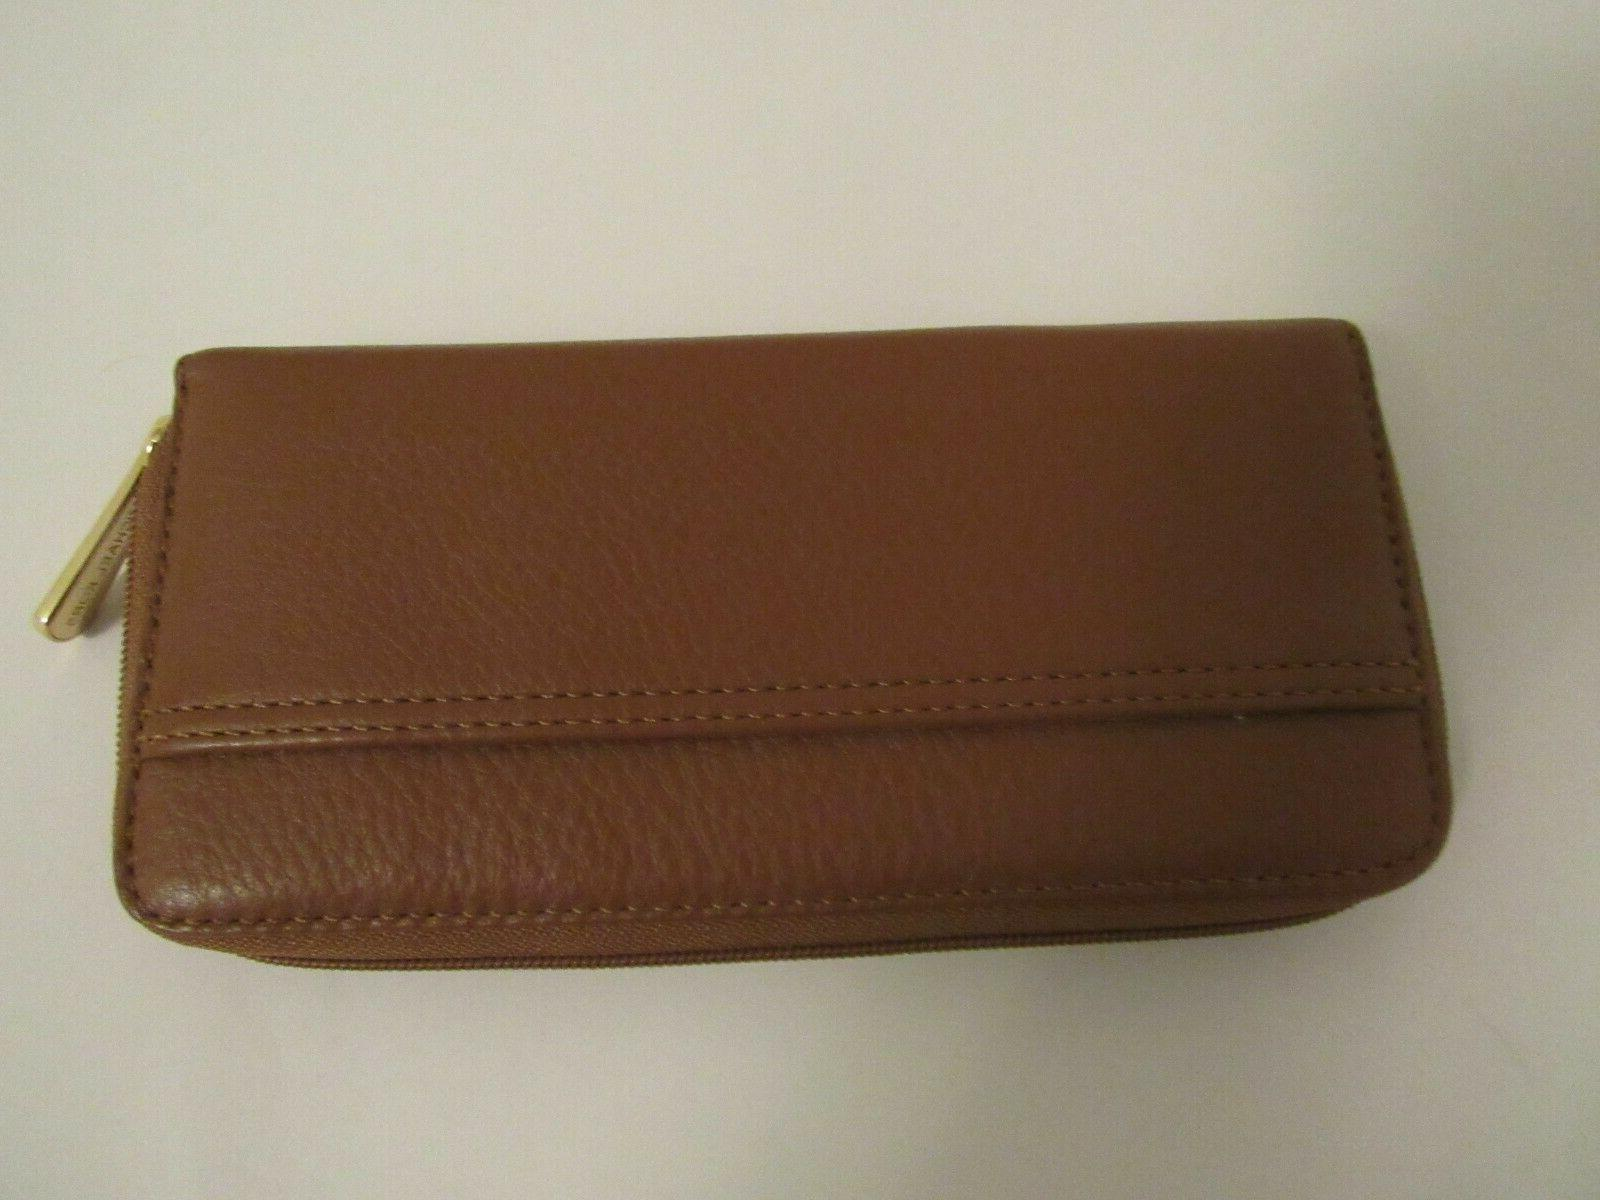 New TAG Kors leather zip-around wallet